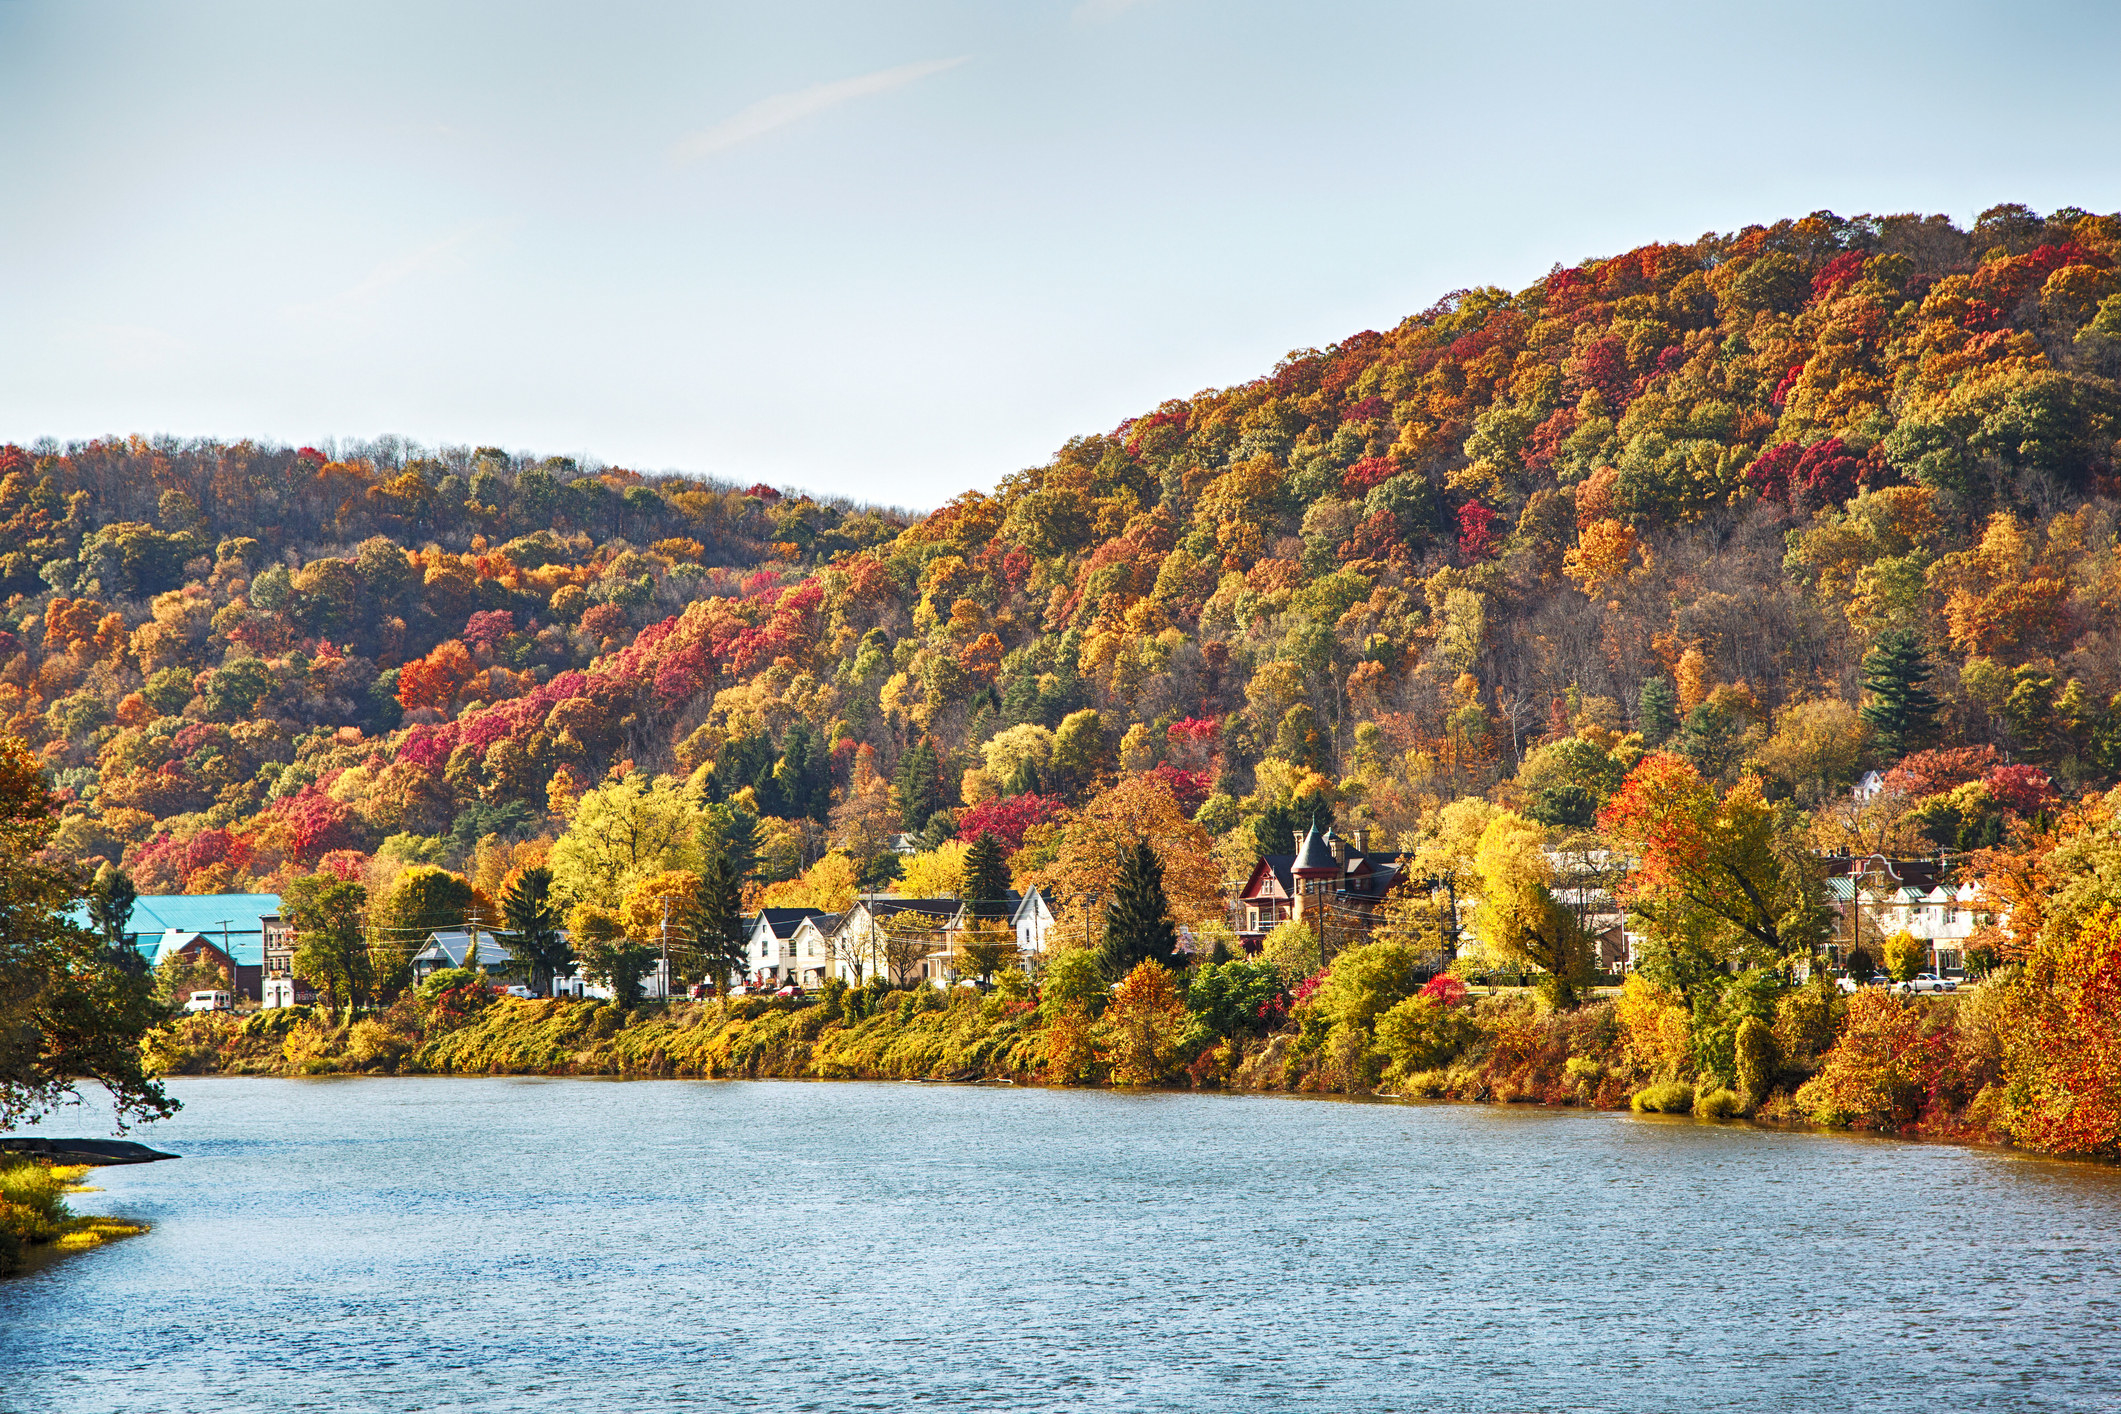 Autumn-colored trees over rolling hills with a river lined with houses in the foreground